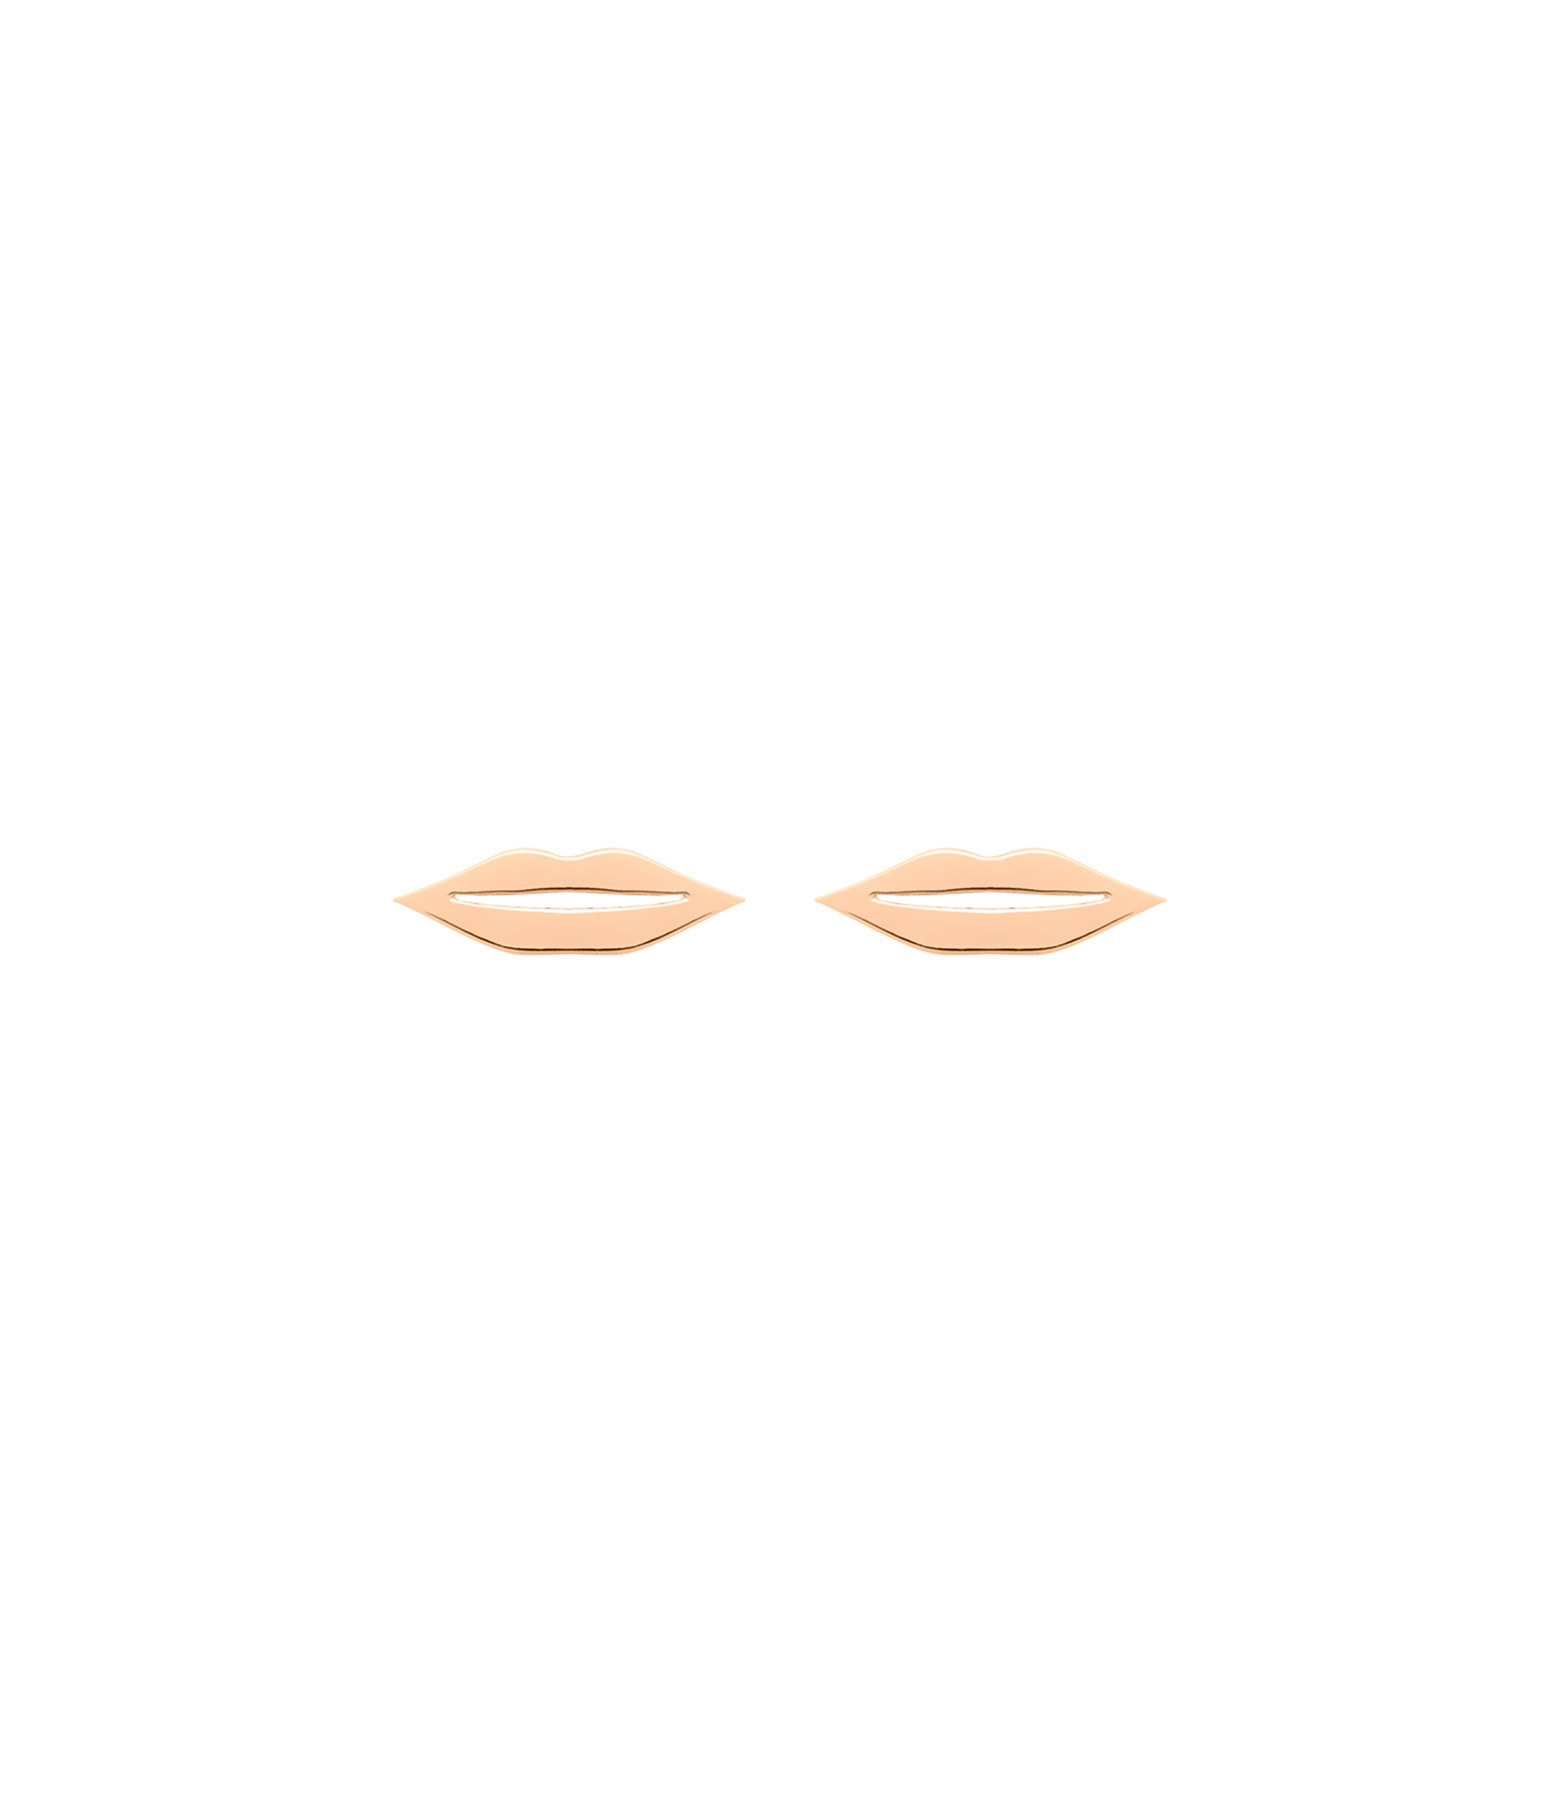 GINETTE NY - Boucles d'oreilles French Kiss Or Rose